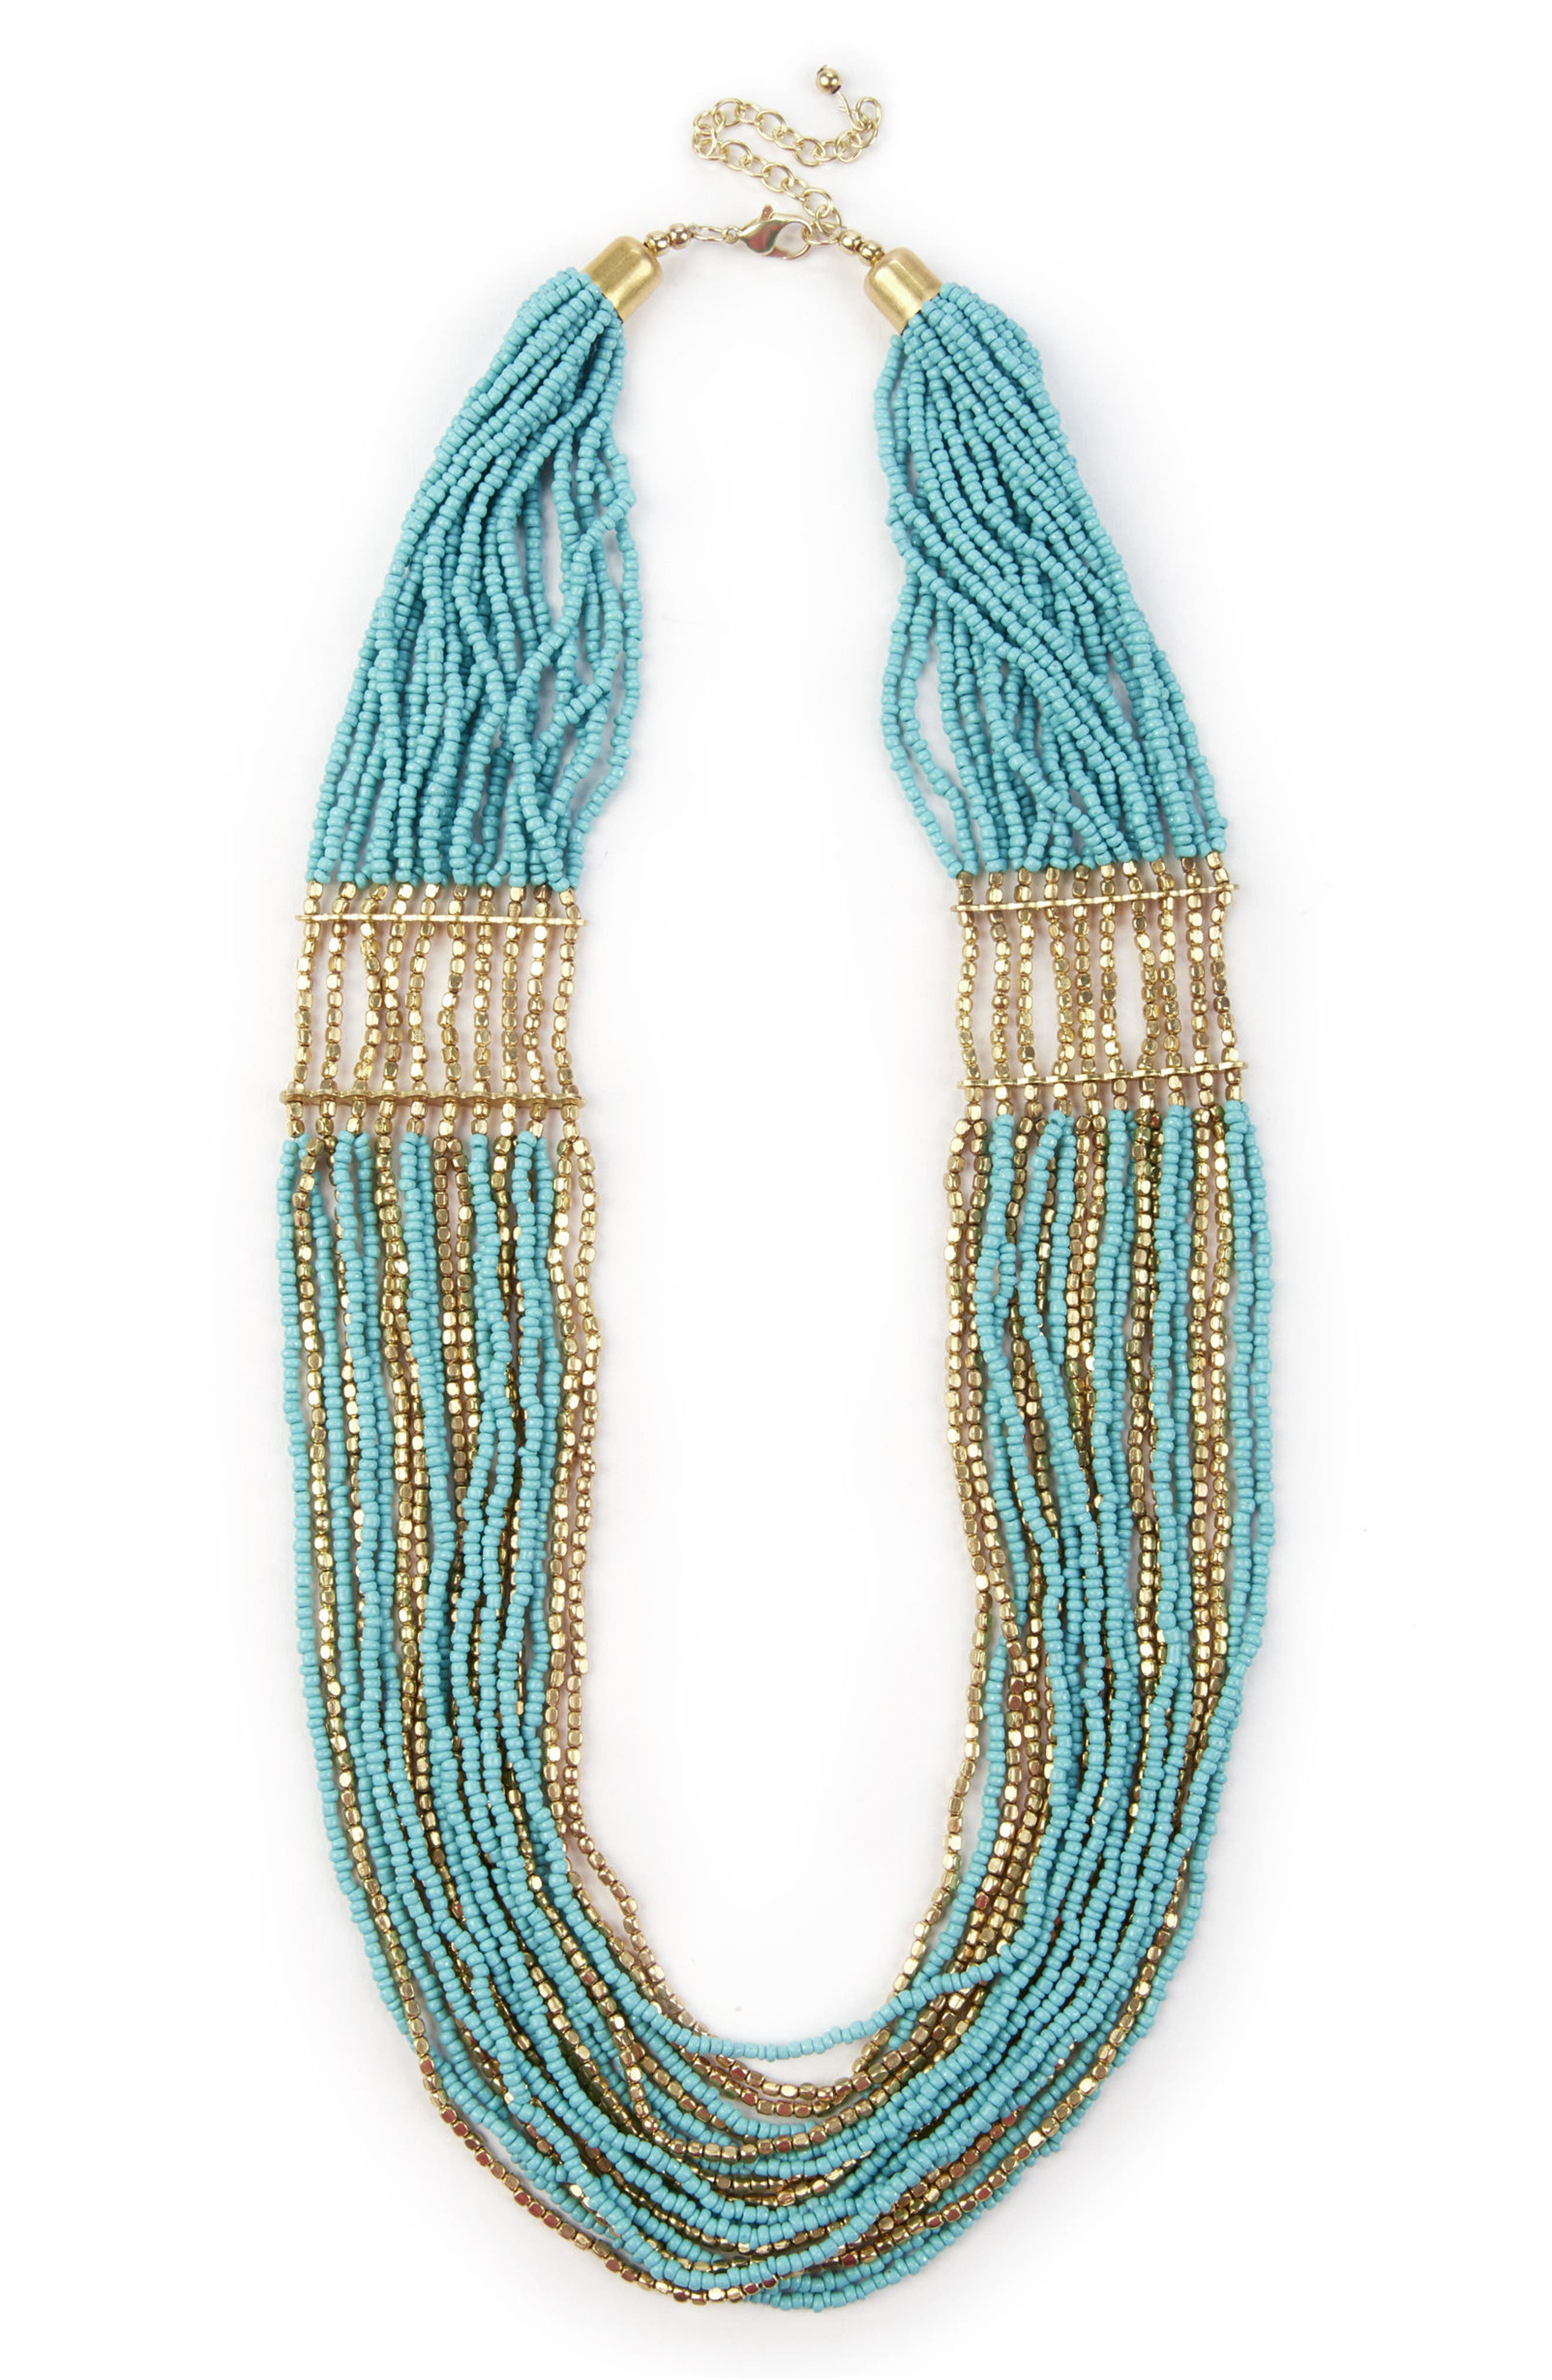 Multistrand Beaded Necklace,                         Main,                         color, Teal Combo